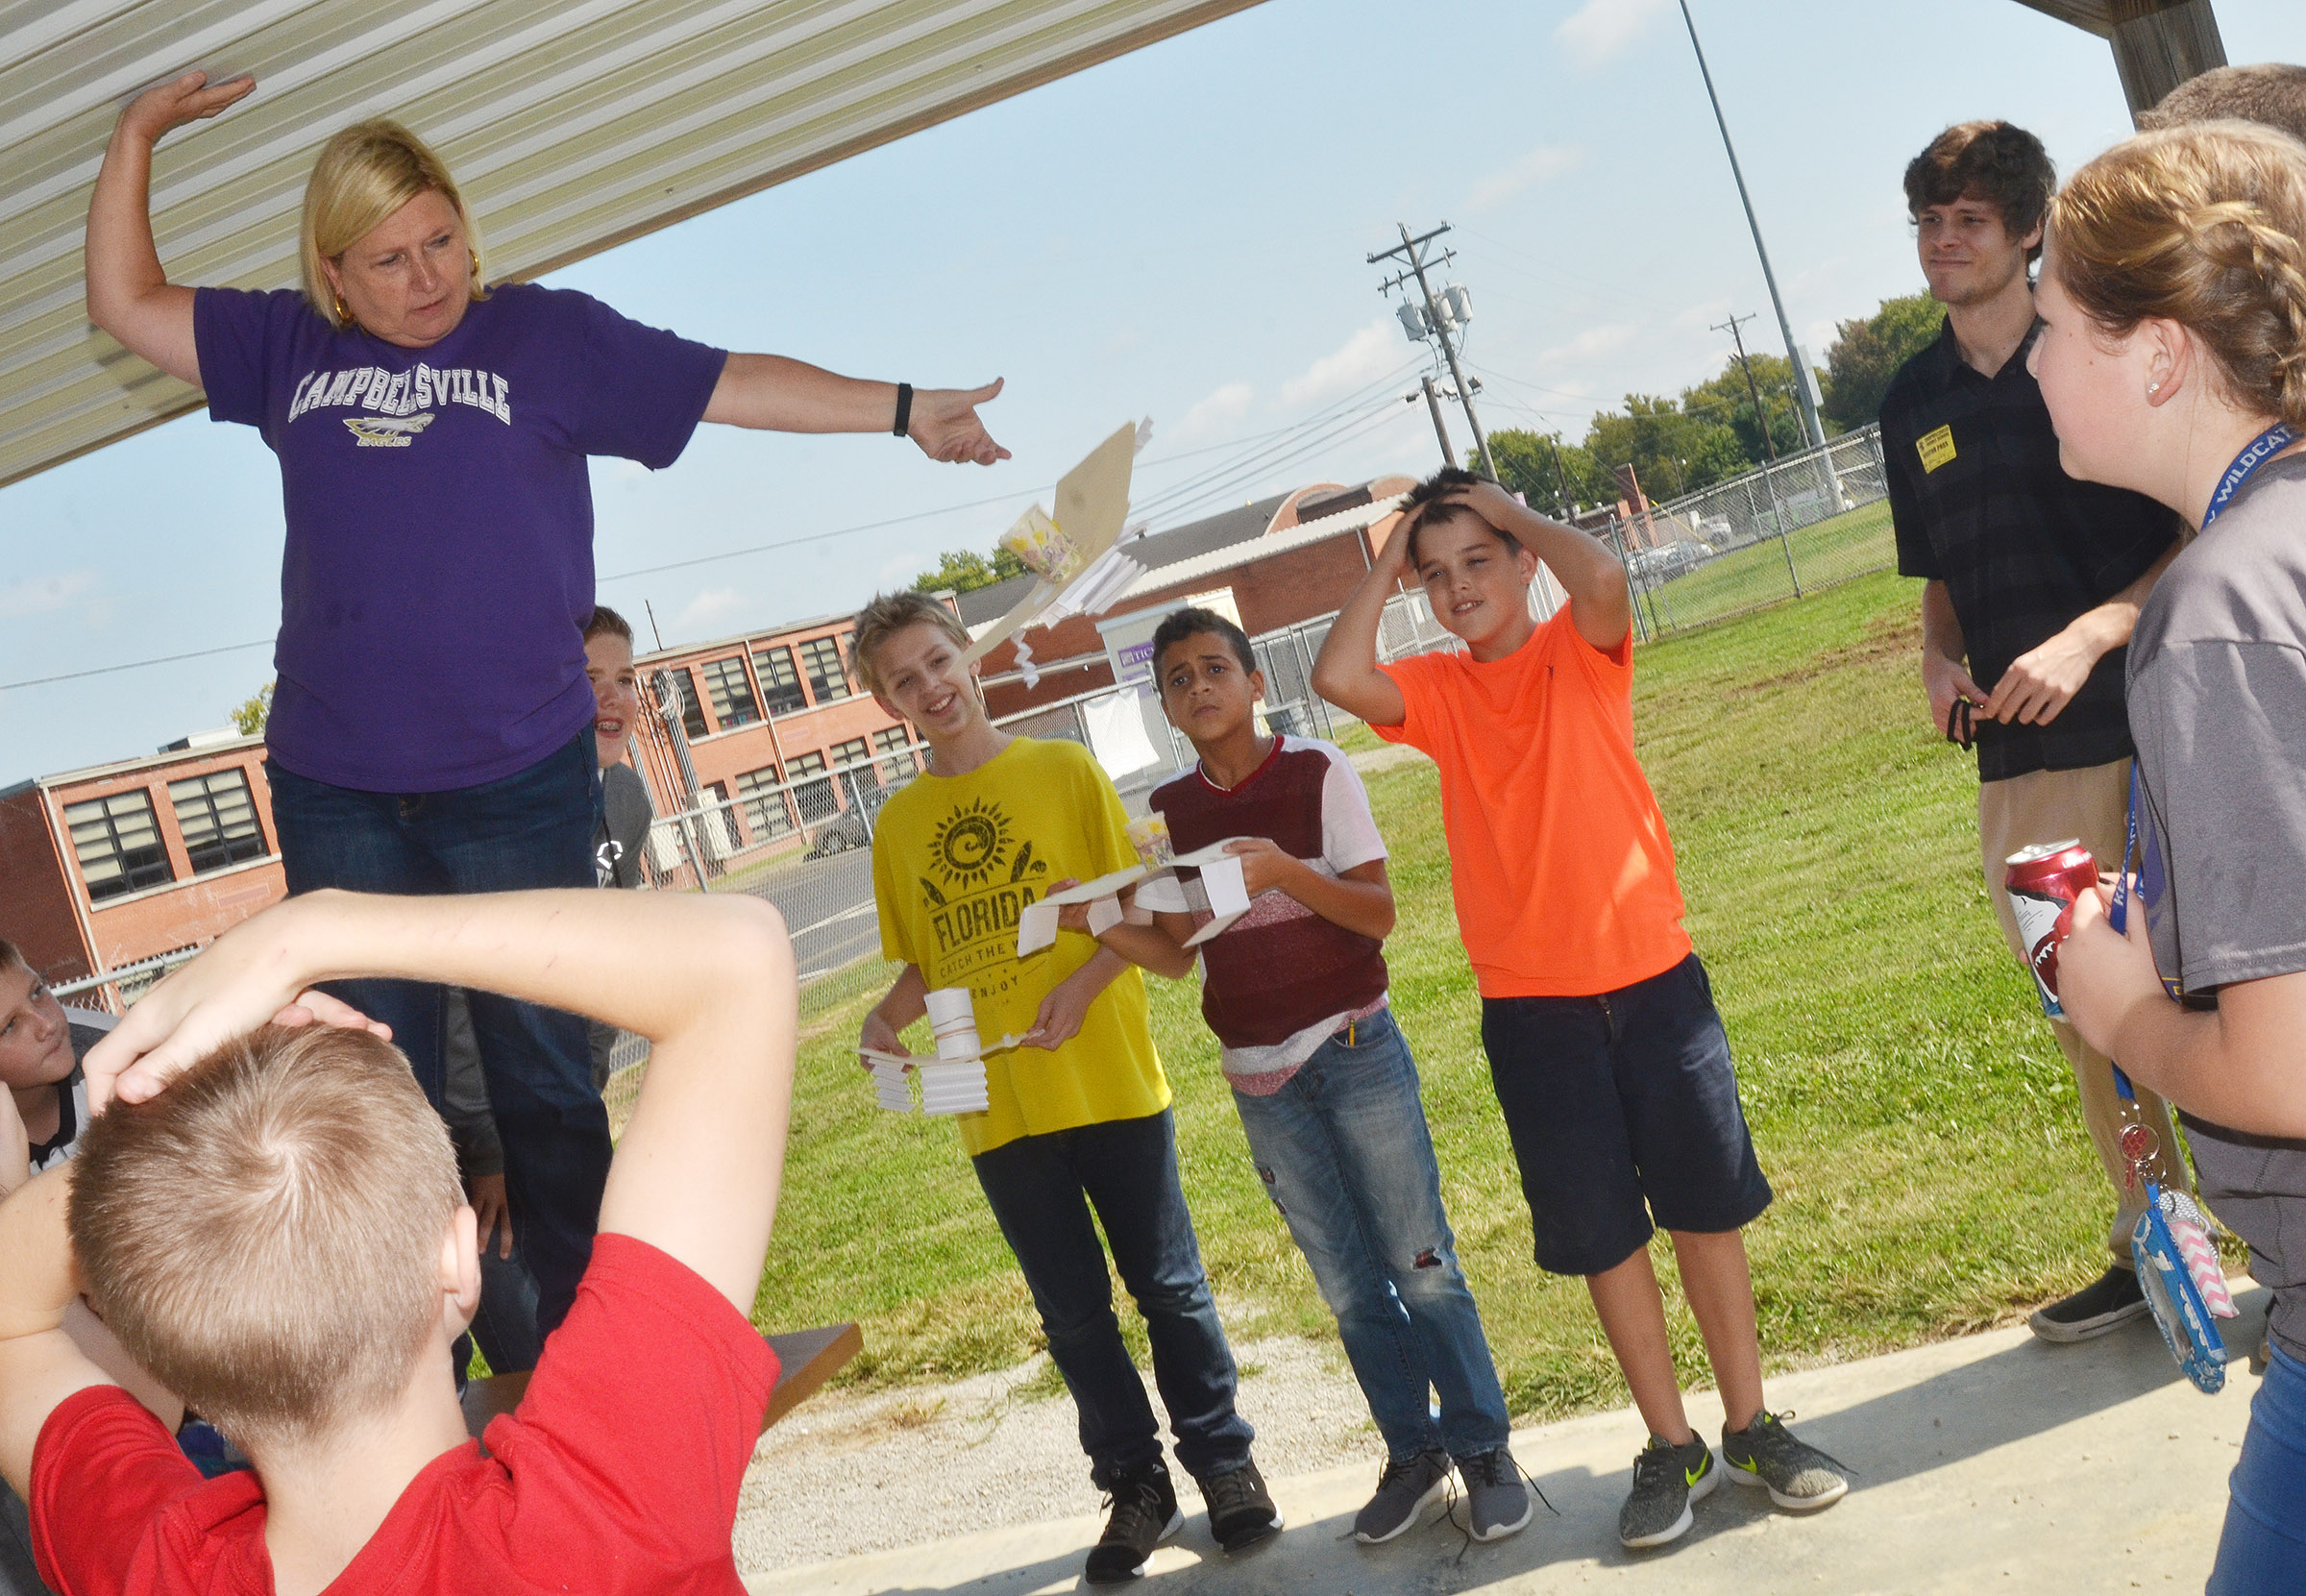 CMS sixth-grade teacher Jan Speer drops a spacecraft, as, from left, Ryan Grubbs, Jacob Releford, Tucker Cartwright and Kaden Bloyd watch.